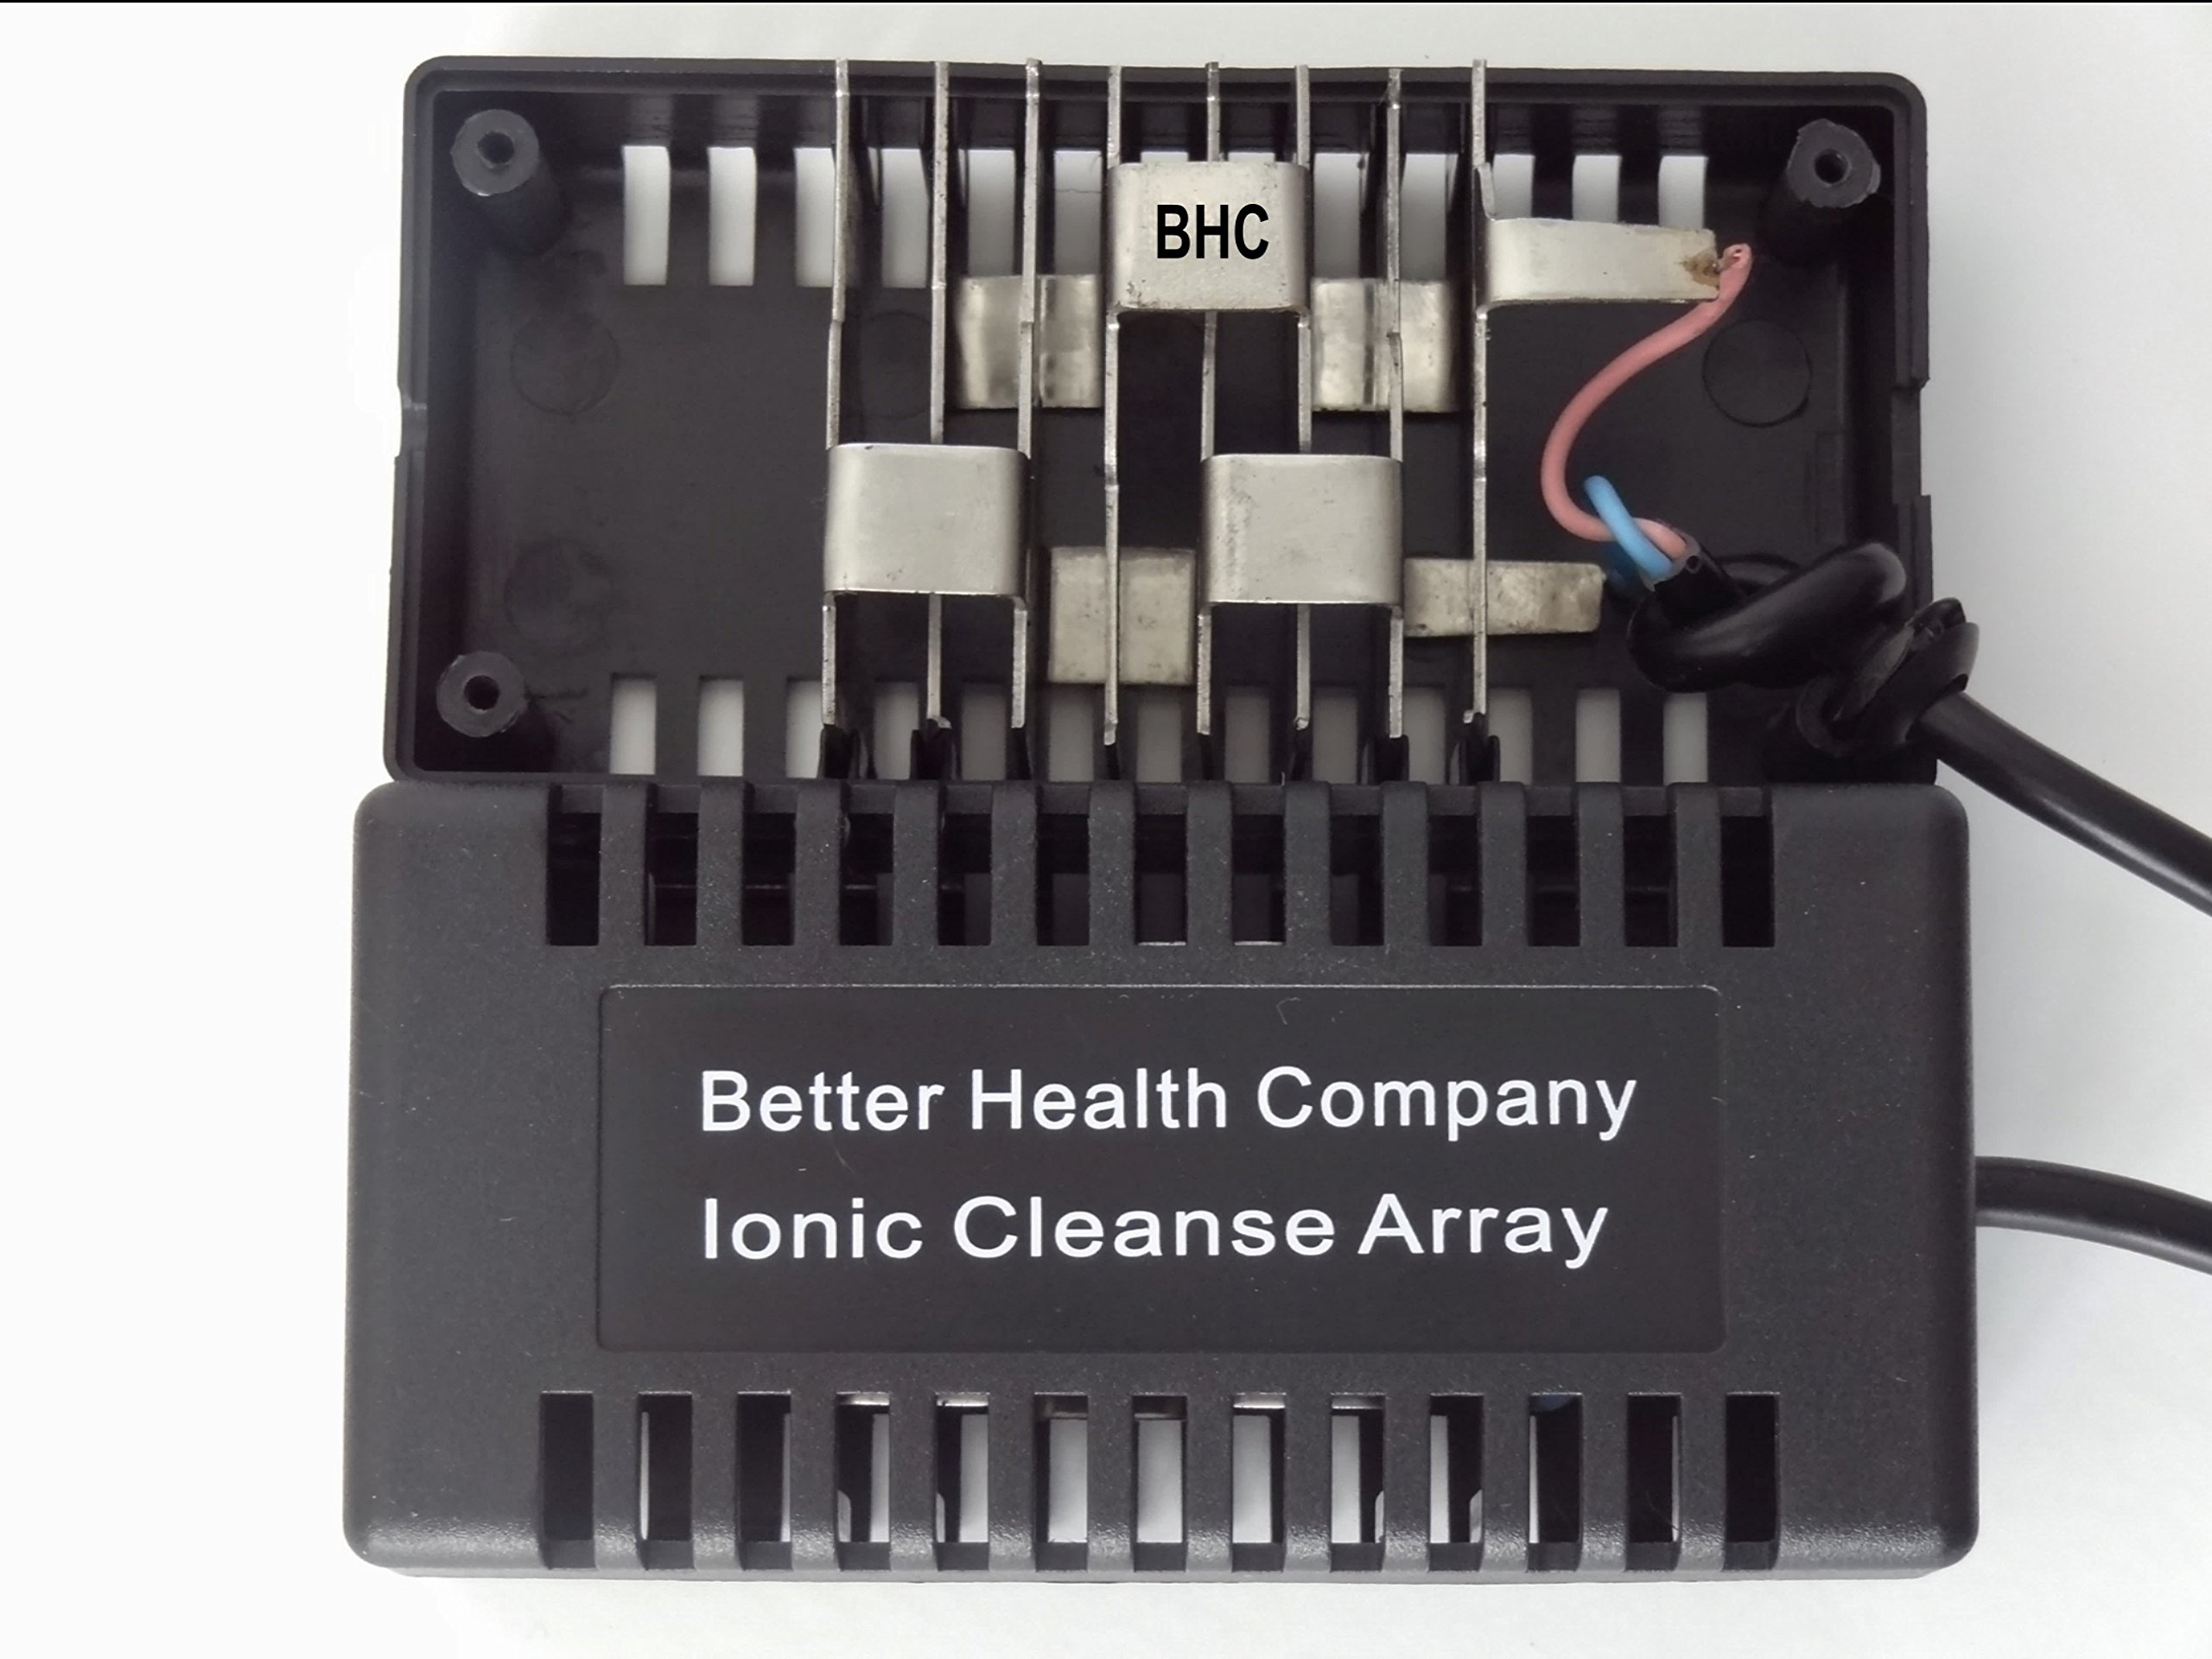 Rectangular Black Ionic Cleanse Detox Foot Spa Arrays by Better Health Company by Better Health Company (Image #2)